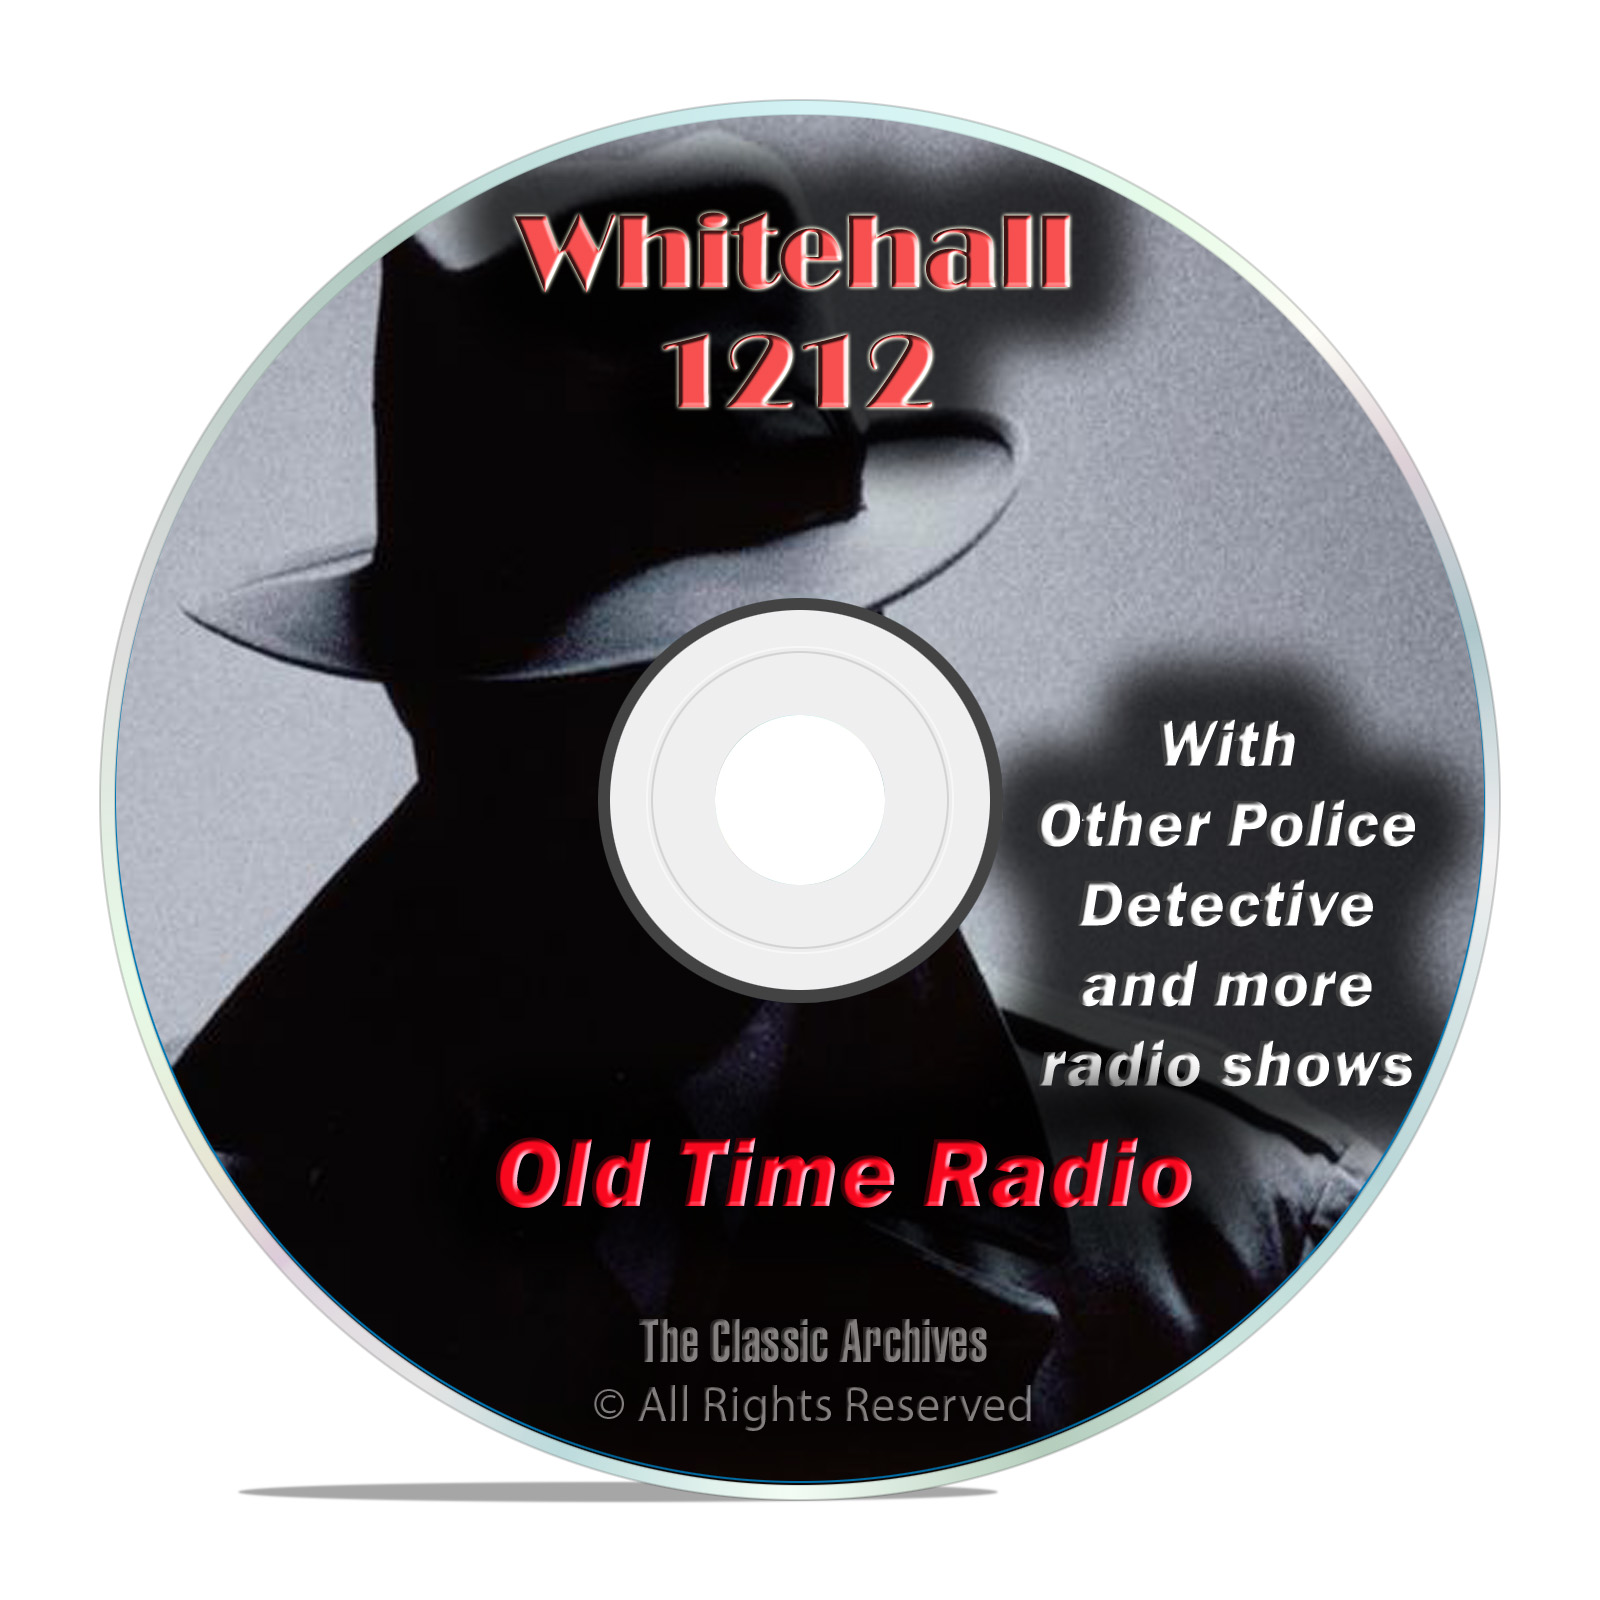 Whitehall 1212, 1,486 Old Time Radio Police Detective Crime Drama Shows DVD